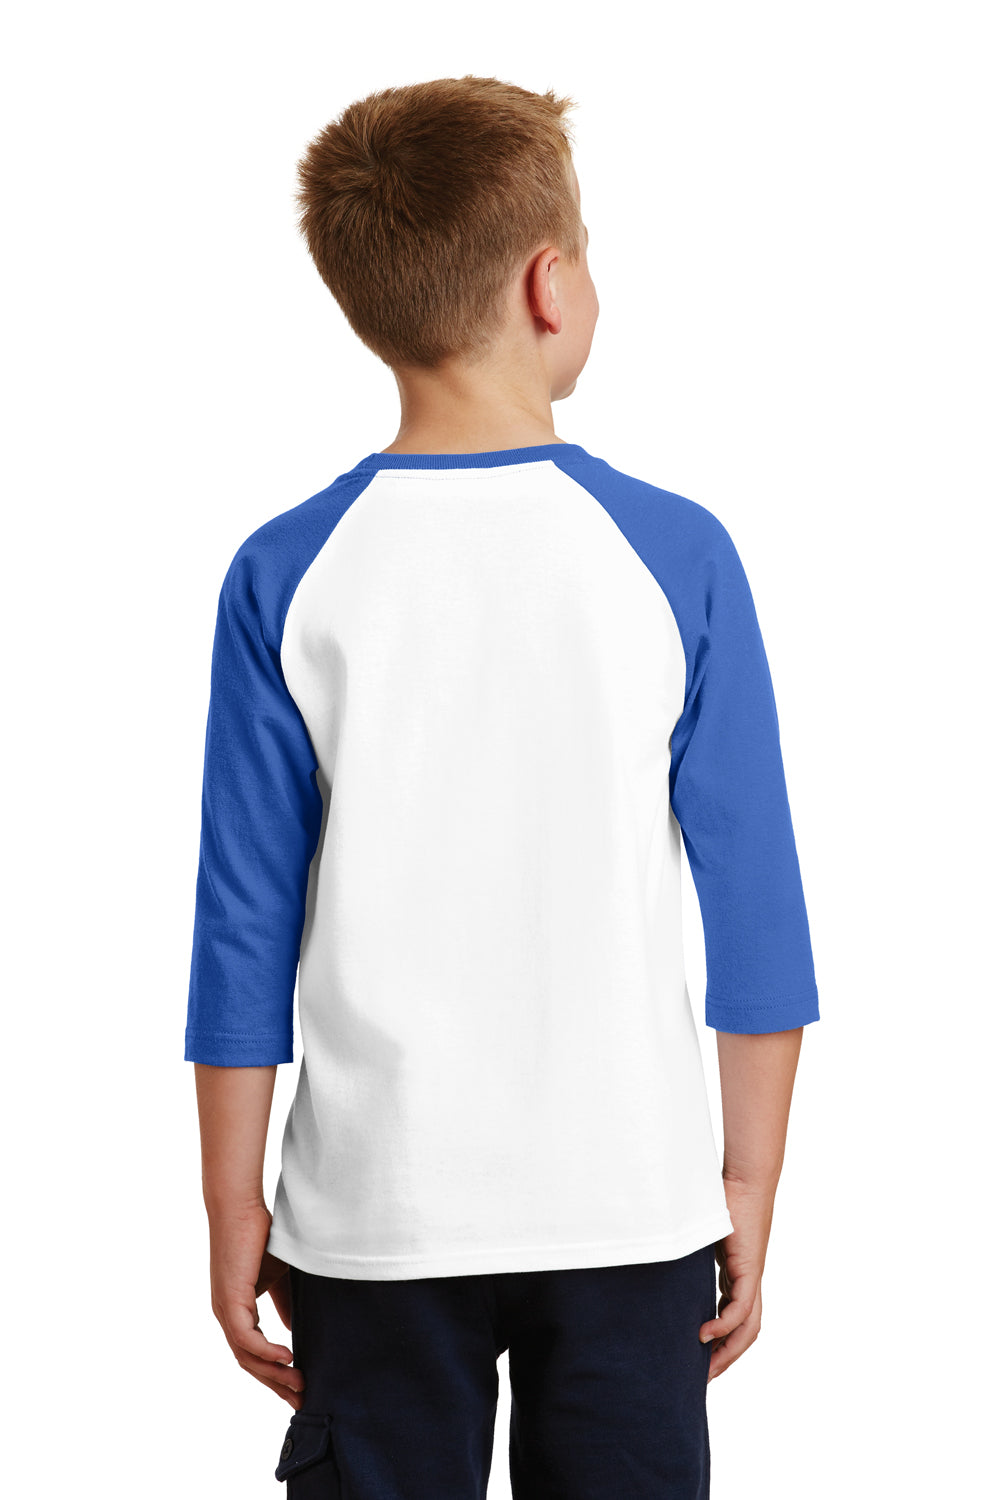 Port & Company PC55YRS Youth Core Moisture Wicking 3/4 Sleeve Crewneck T-Shirt White/Royal Blue Back